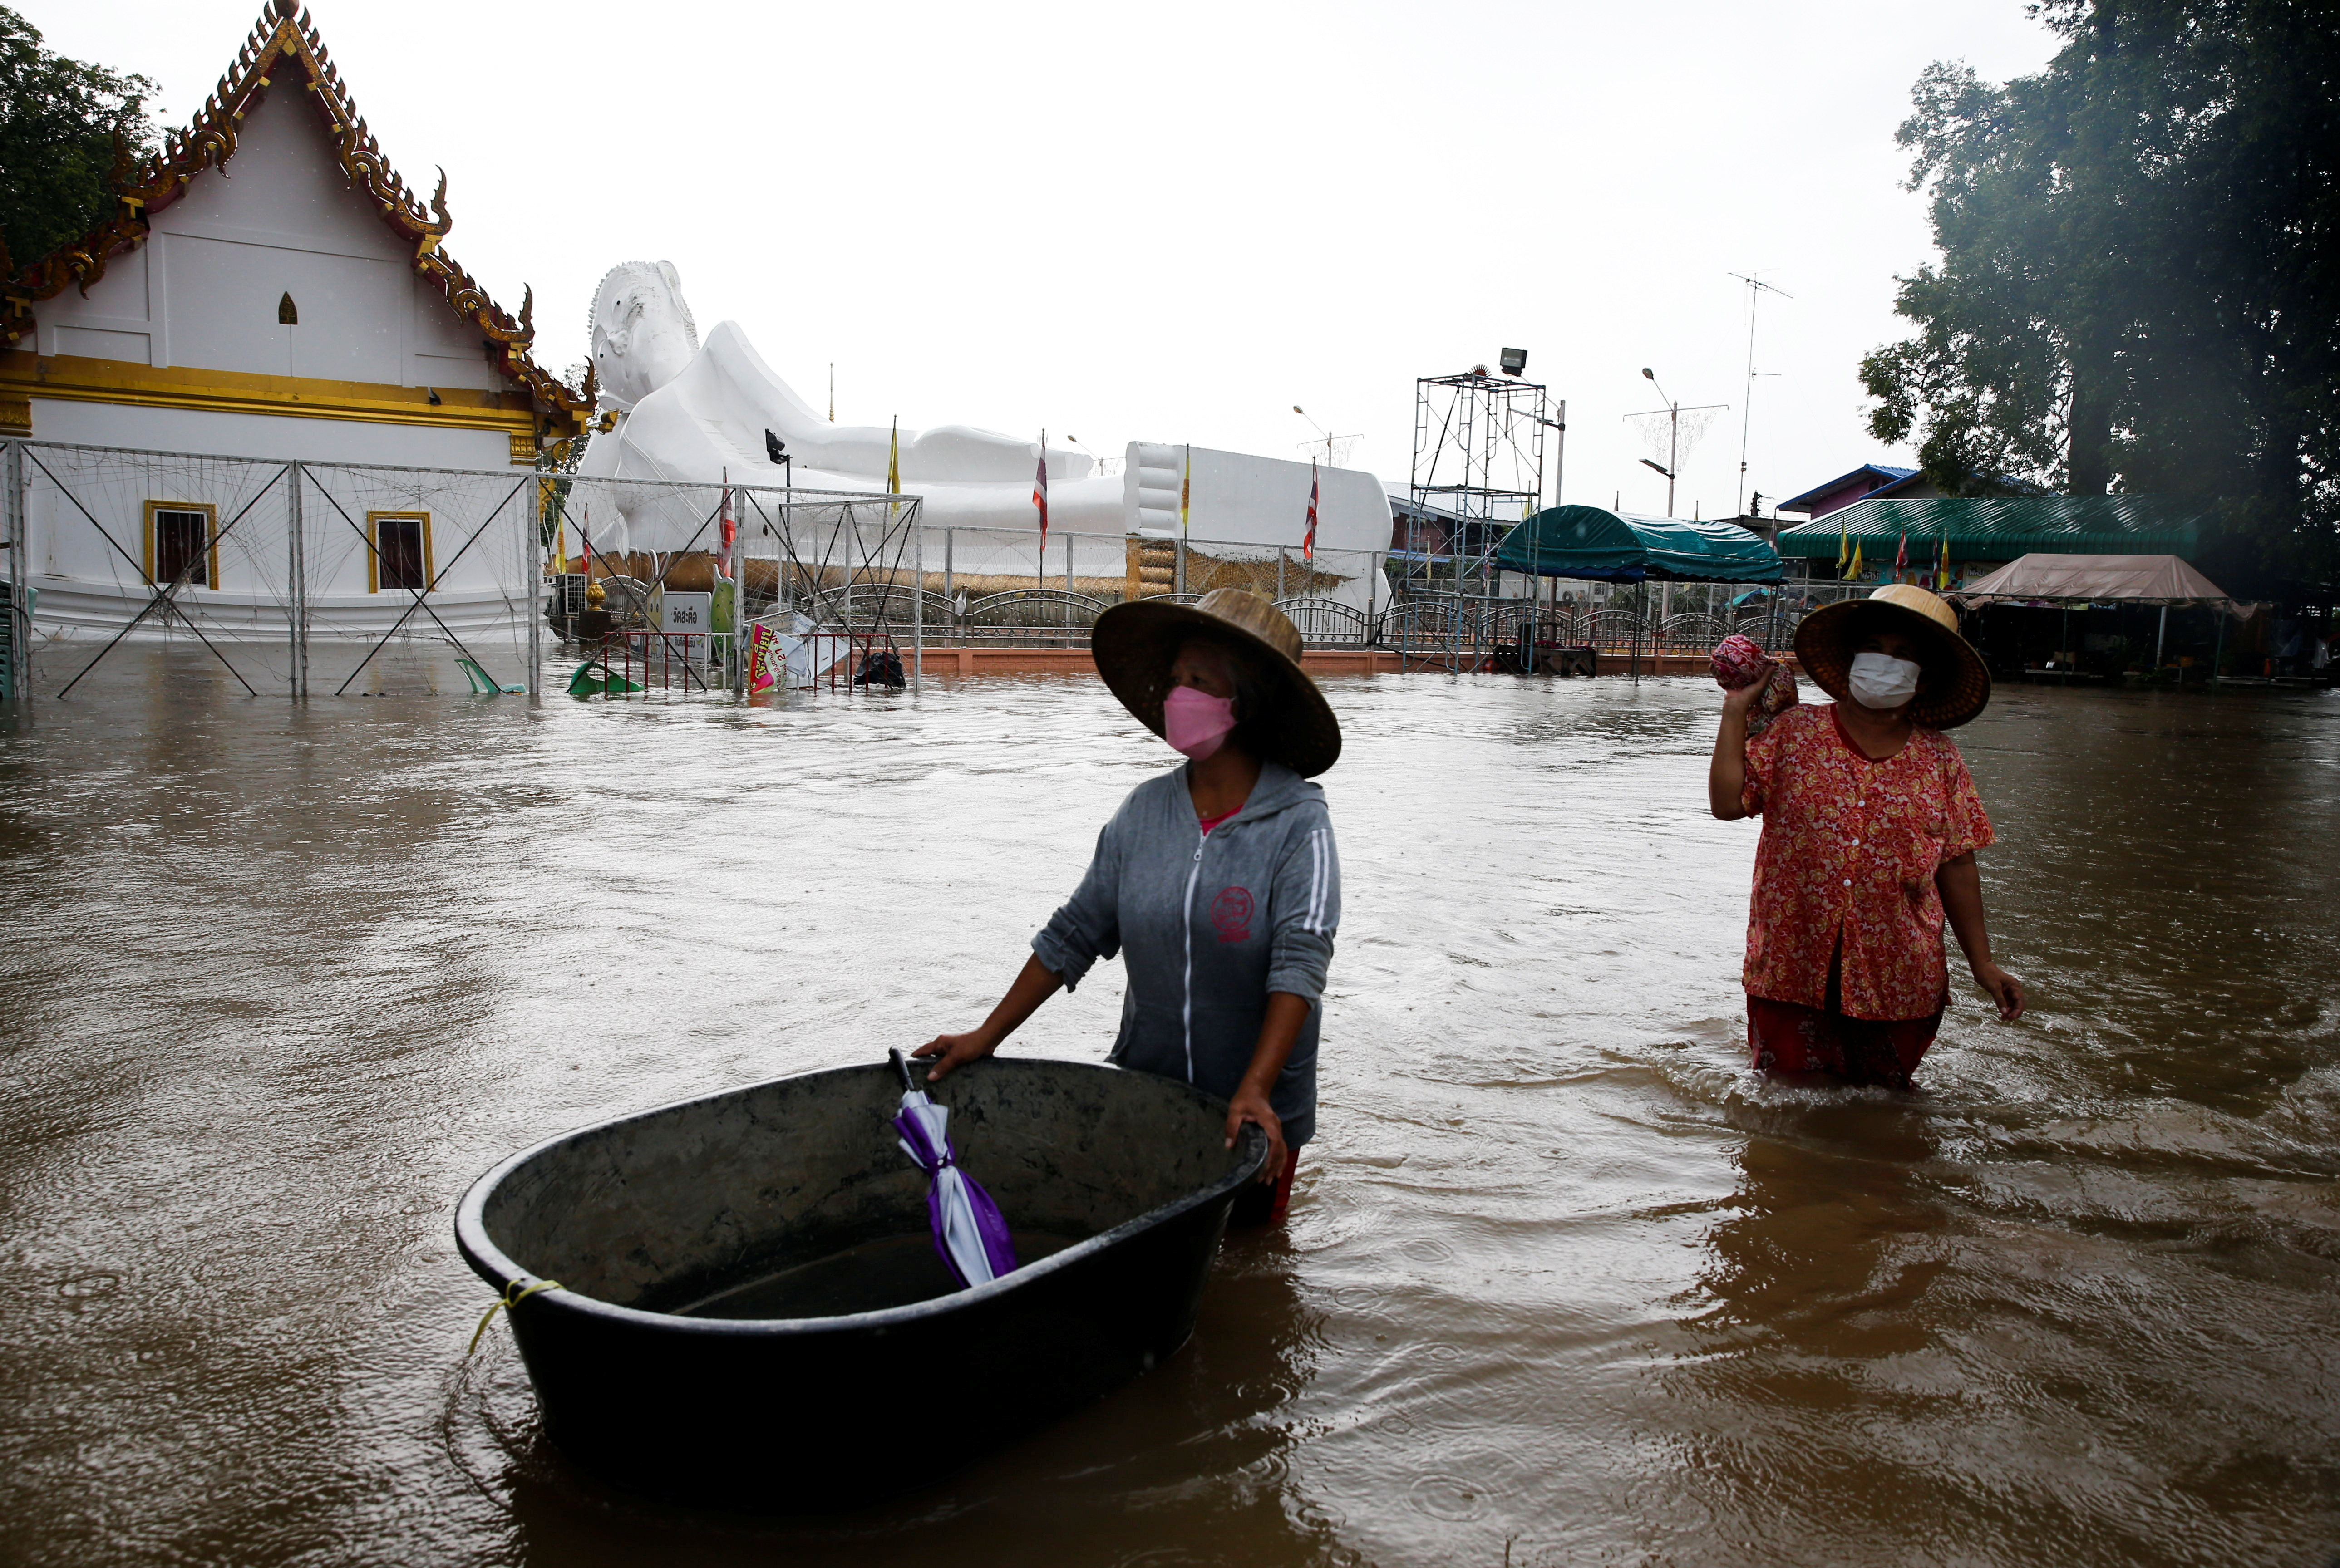 A lying Buddha statue is seen during the flood at a Temple in Ayutthaya, Thailand, October 6, 2021. REUTERS/Soe Zeya Tun